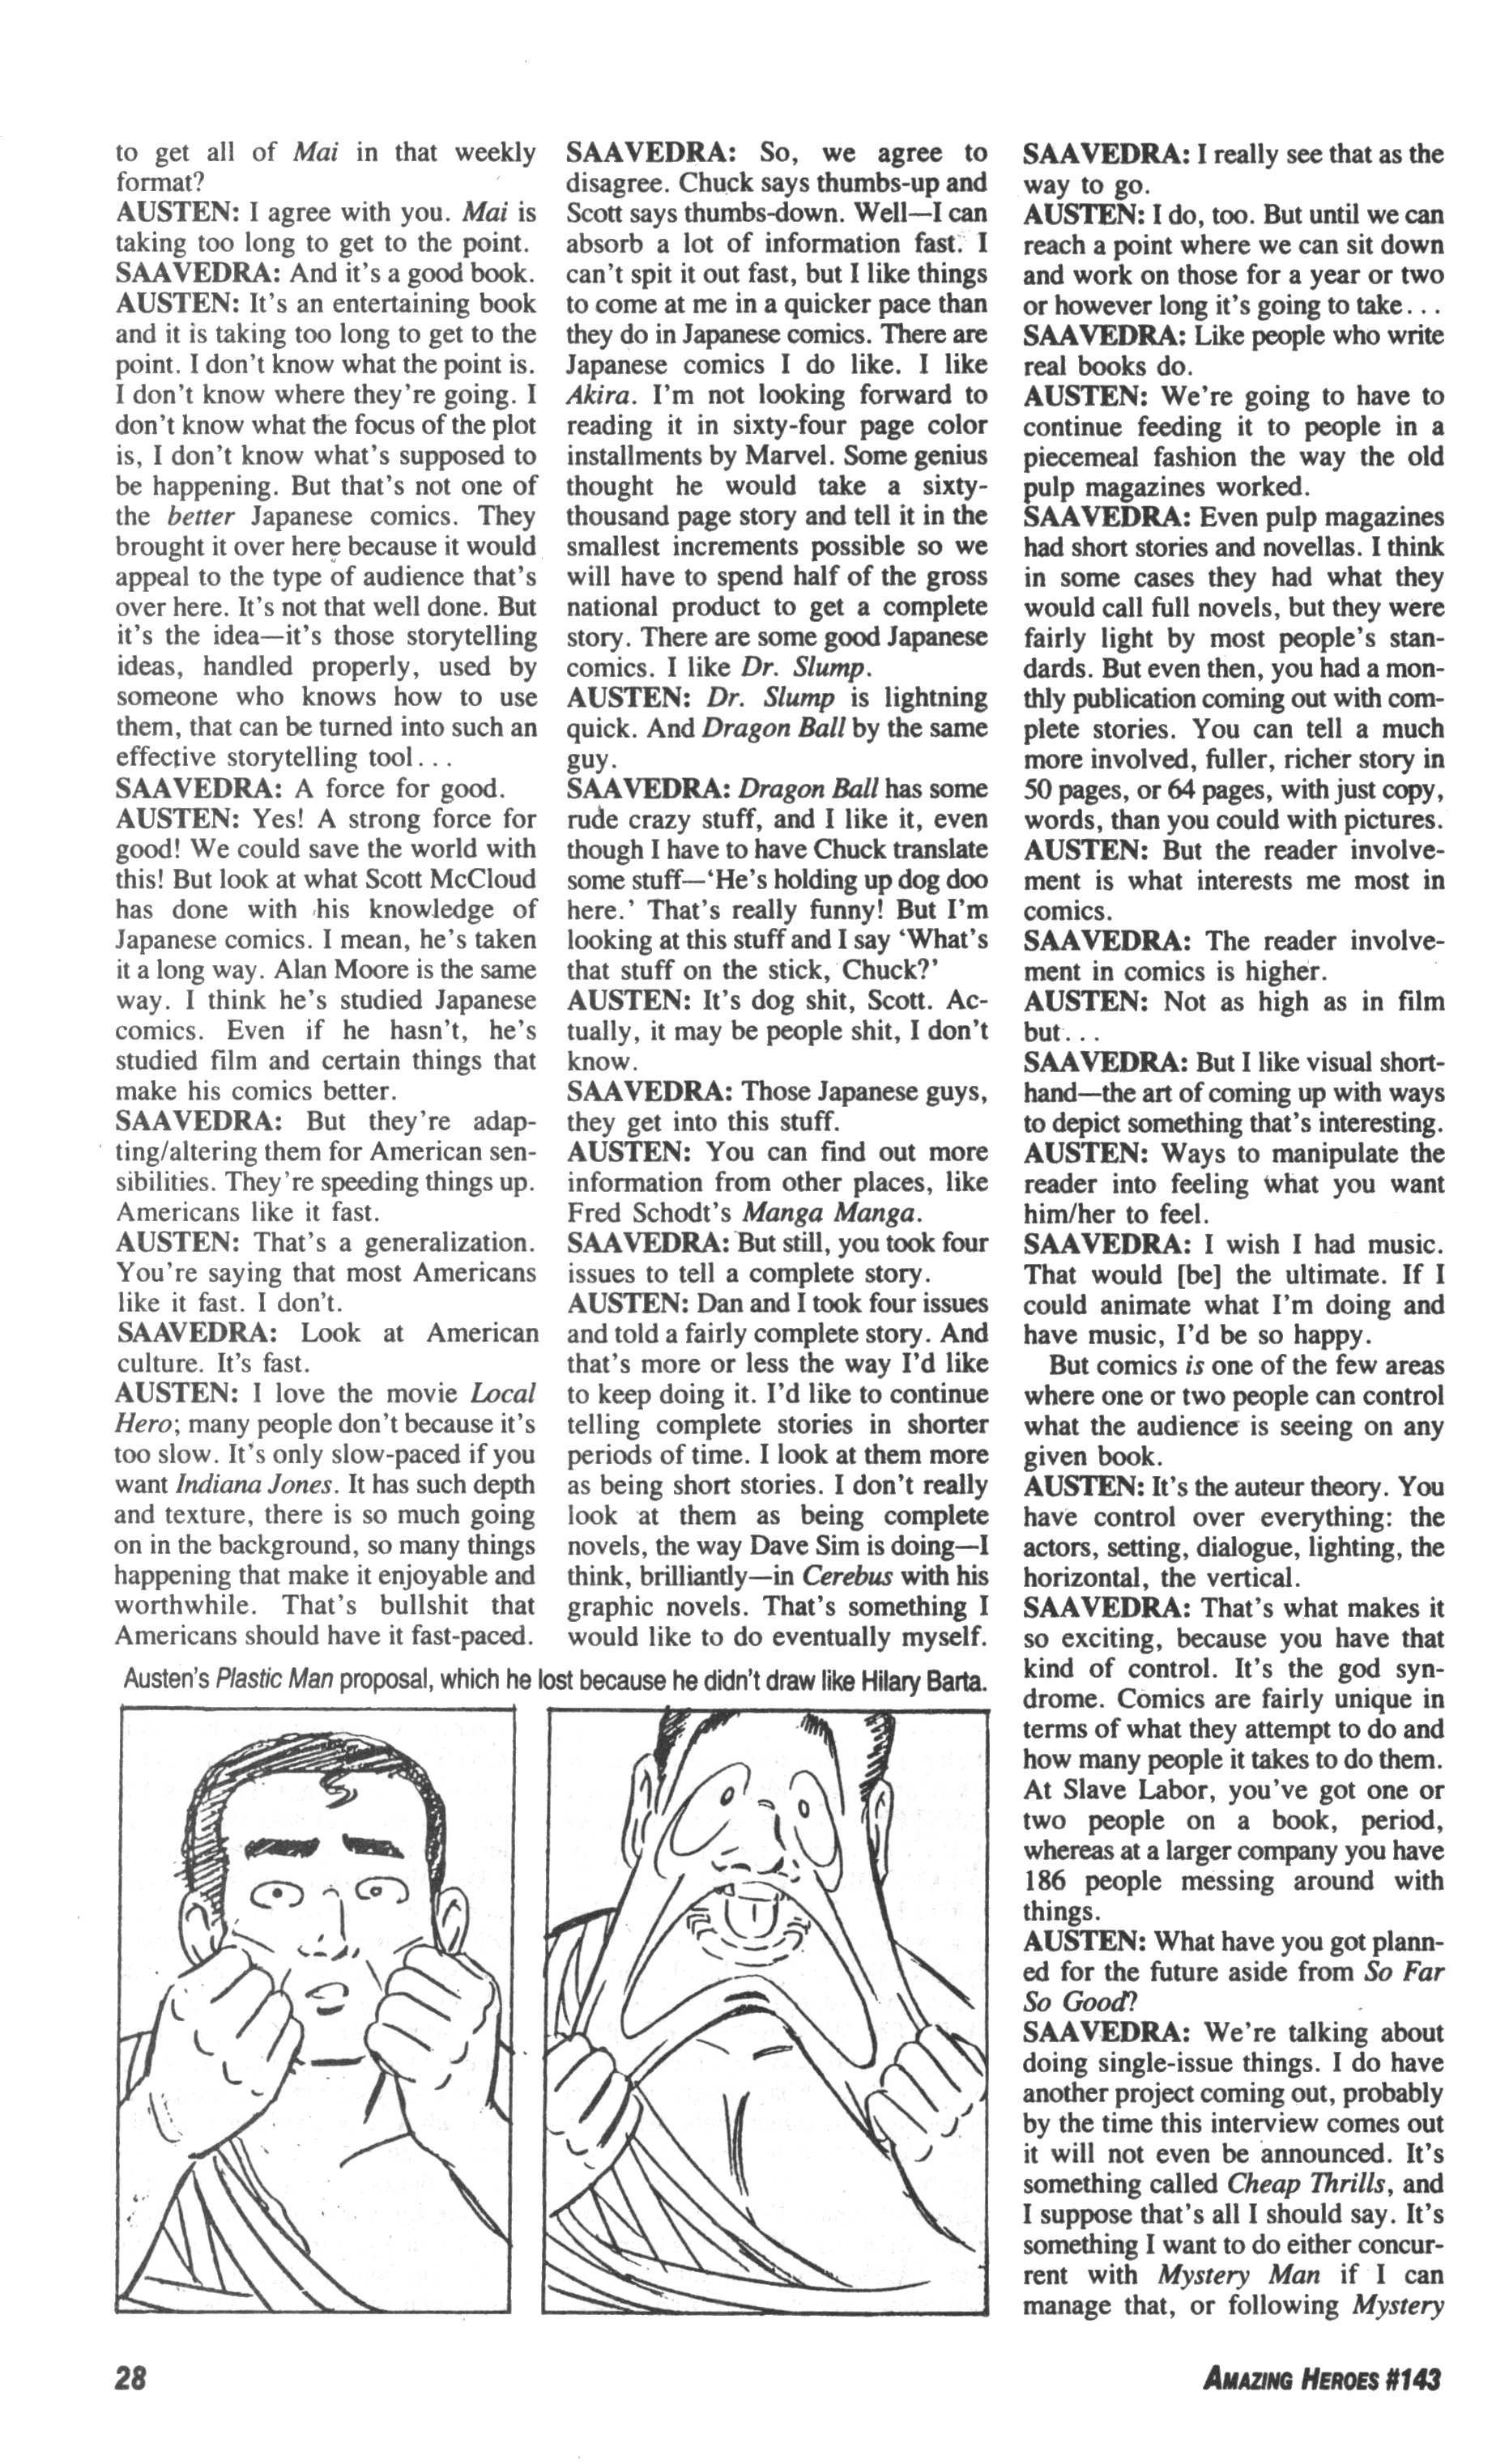 Read online Amazing Heroes comic -  Issue #143 - 28